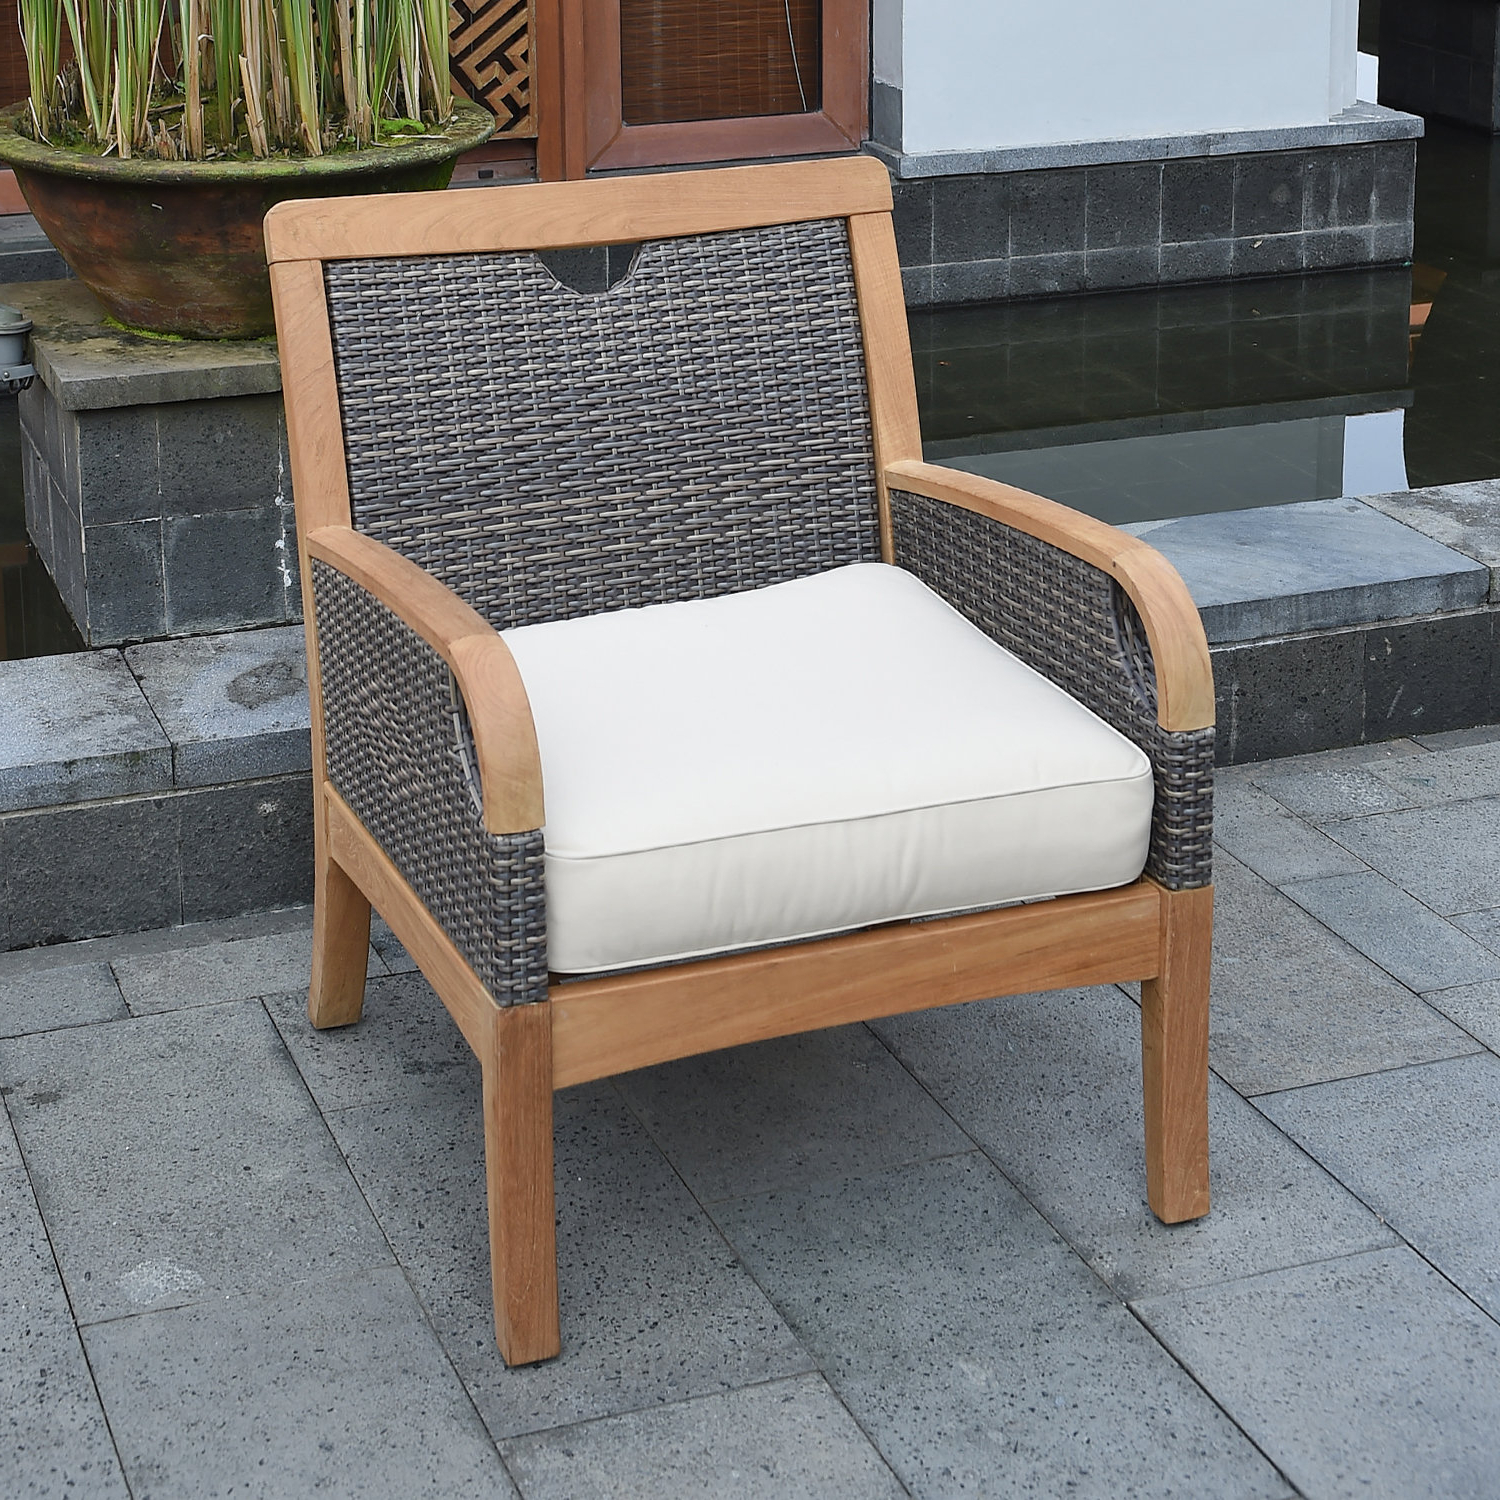 Mansfield Teak Patio Chair With Cushions Throughout Most Up To Date Mansfield Teak Loveseats With Cushion (View 10 of 20)